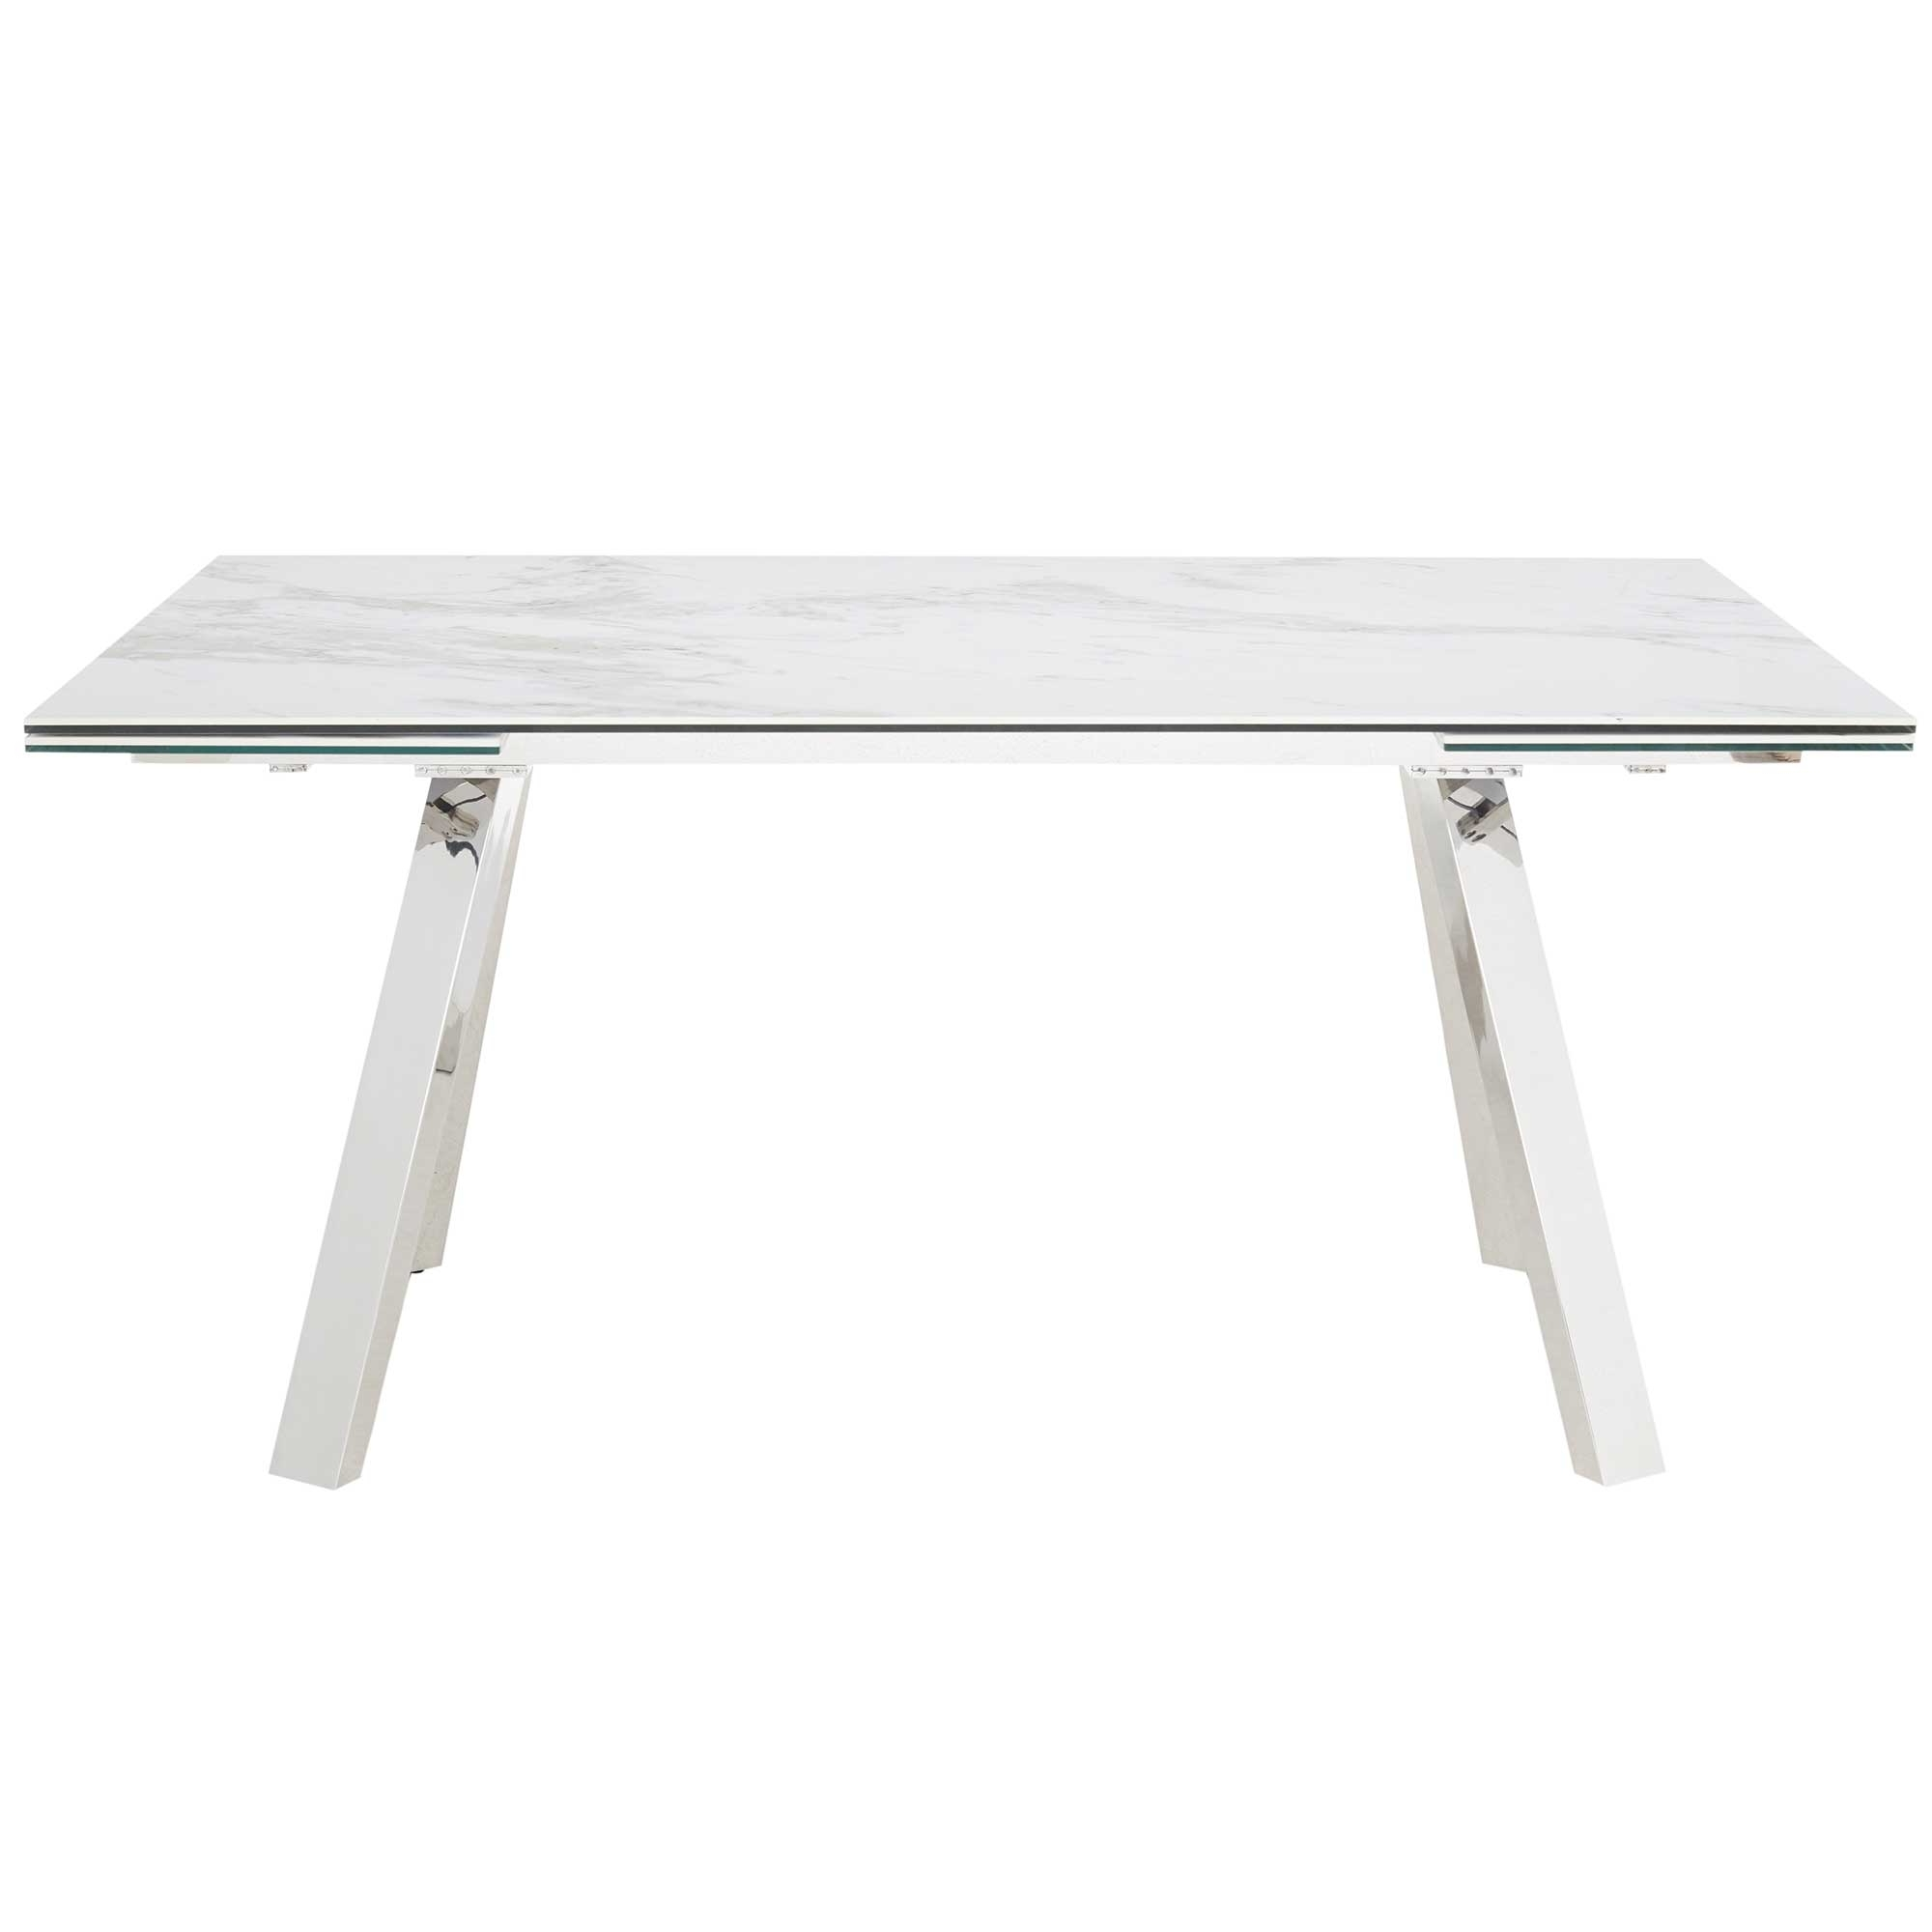 Well Known Extending Marble Dining Tables Intended For Ginostra Extending Dining Table, White Marble (View 10 of 25)